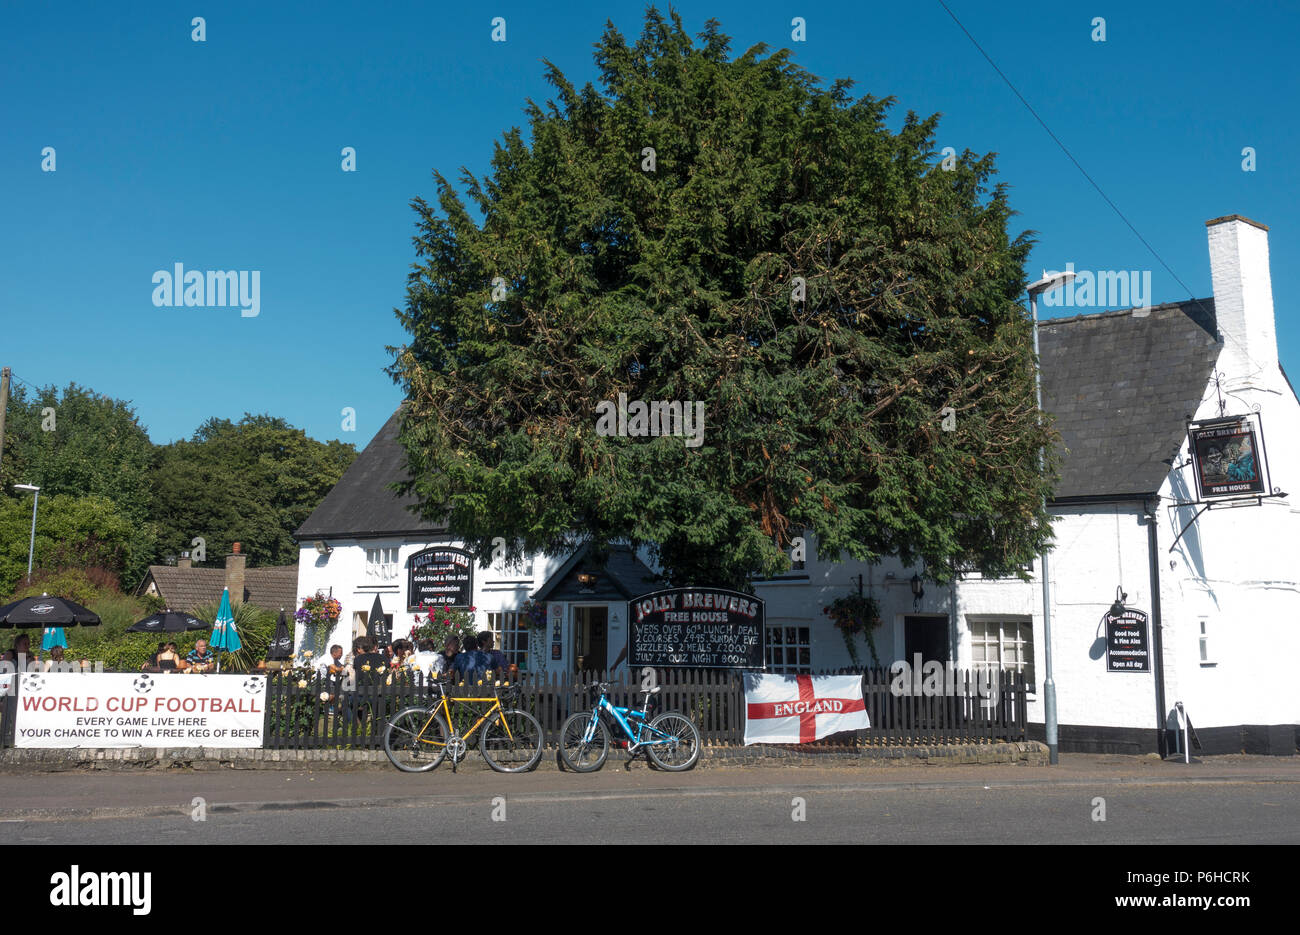 People enjoying warm day at Jolly Brewers pub Milton Cambridge - Stock Image